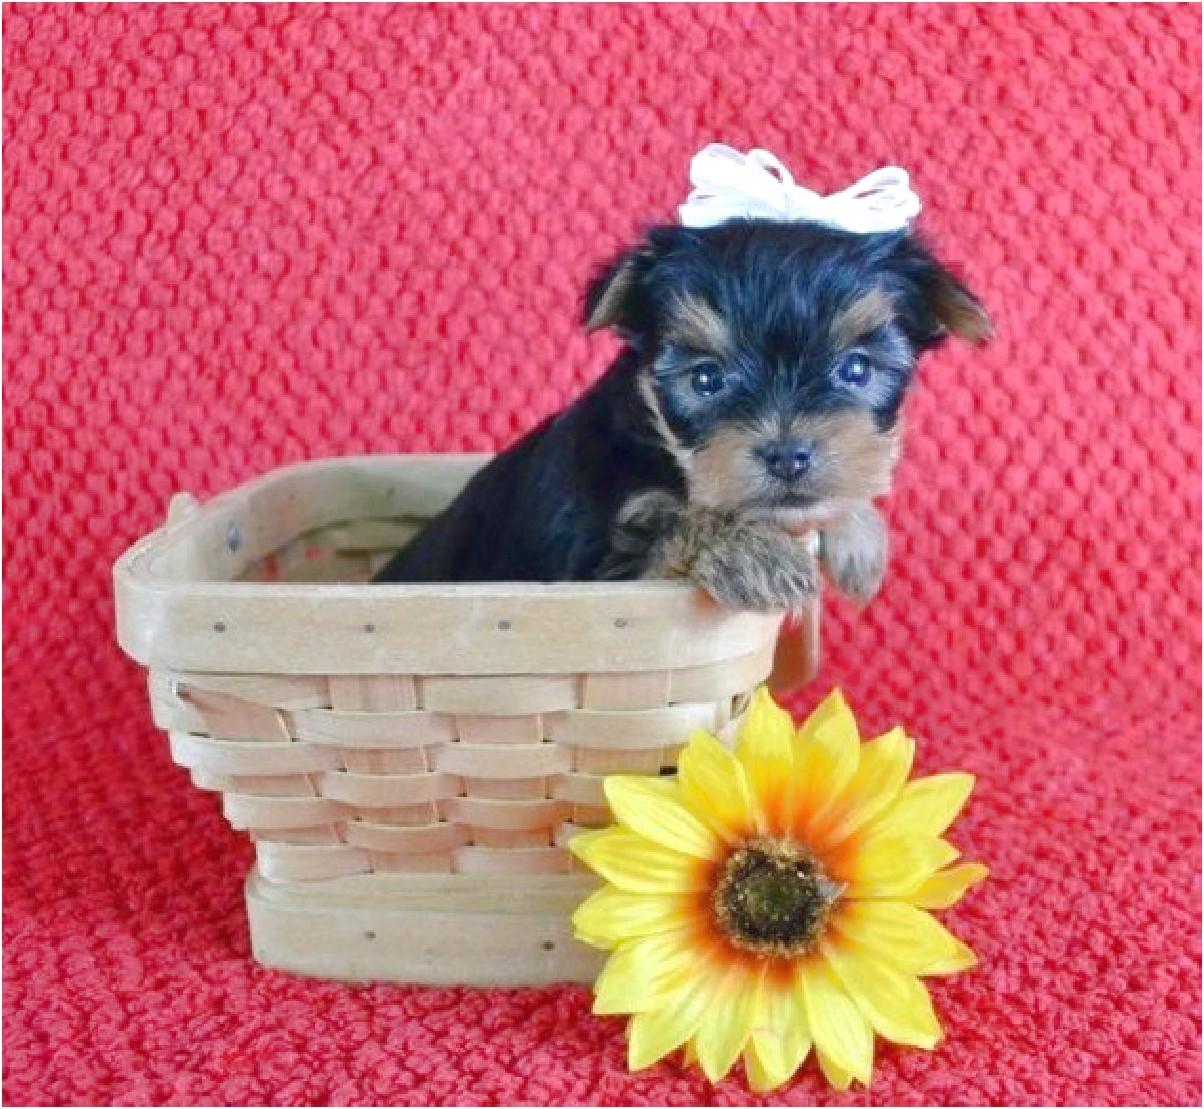 yorkie puppies for sale near me under 300 dollars